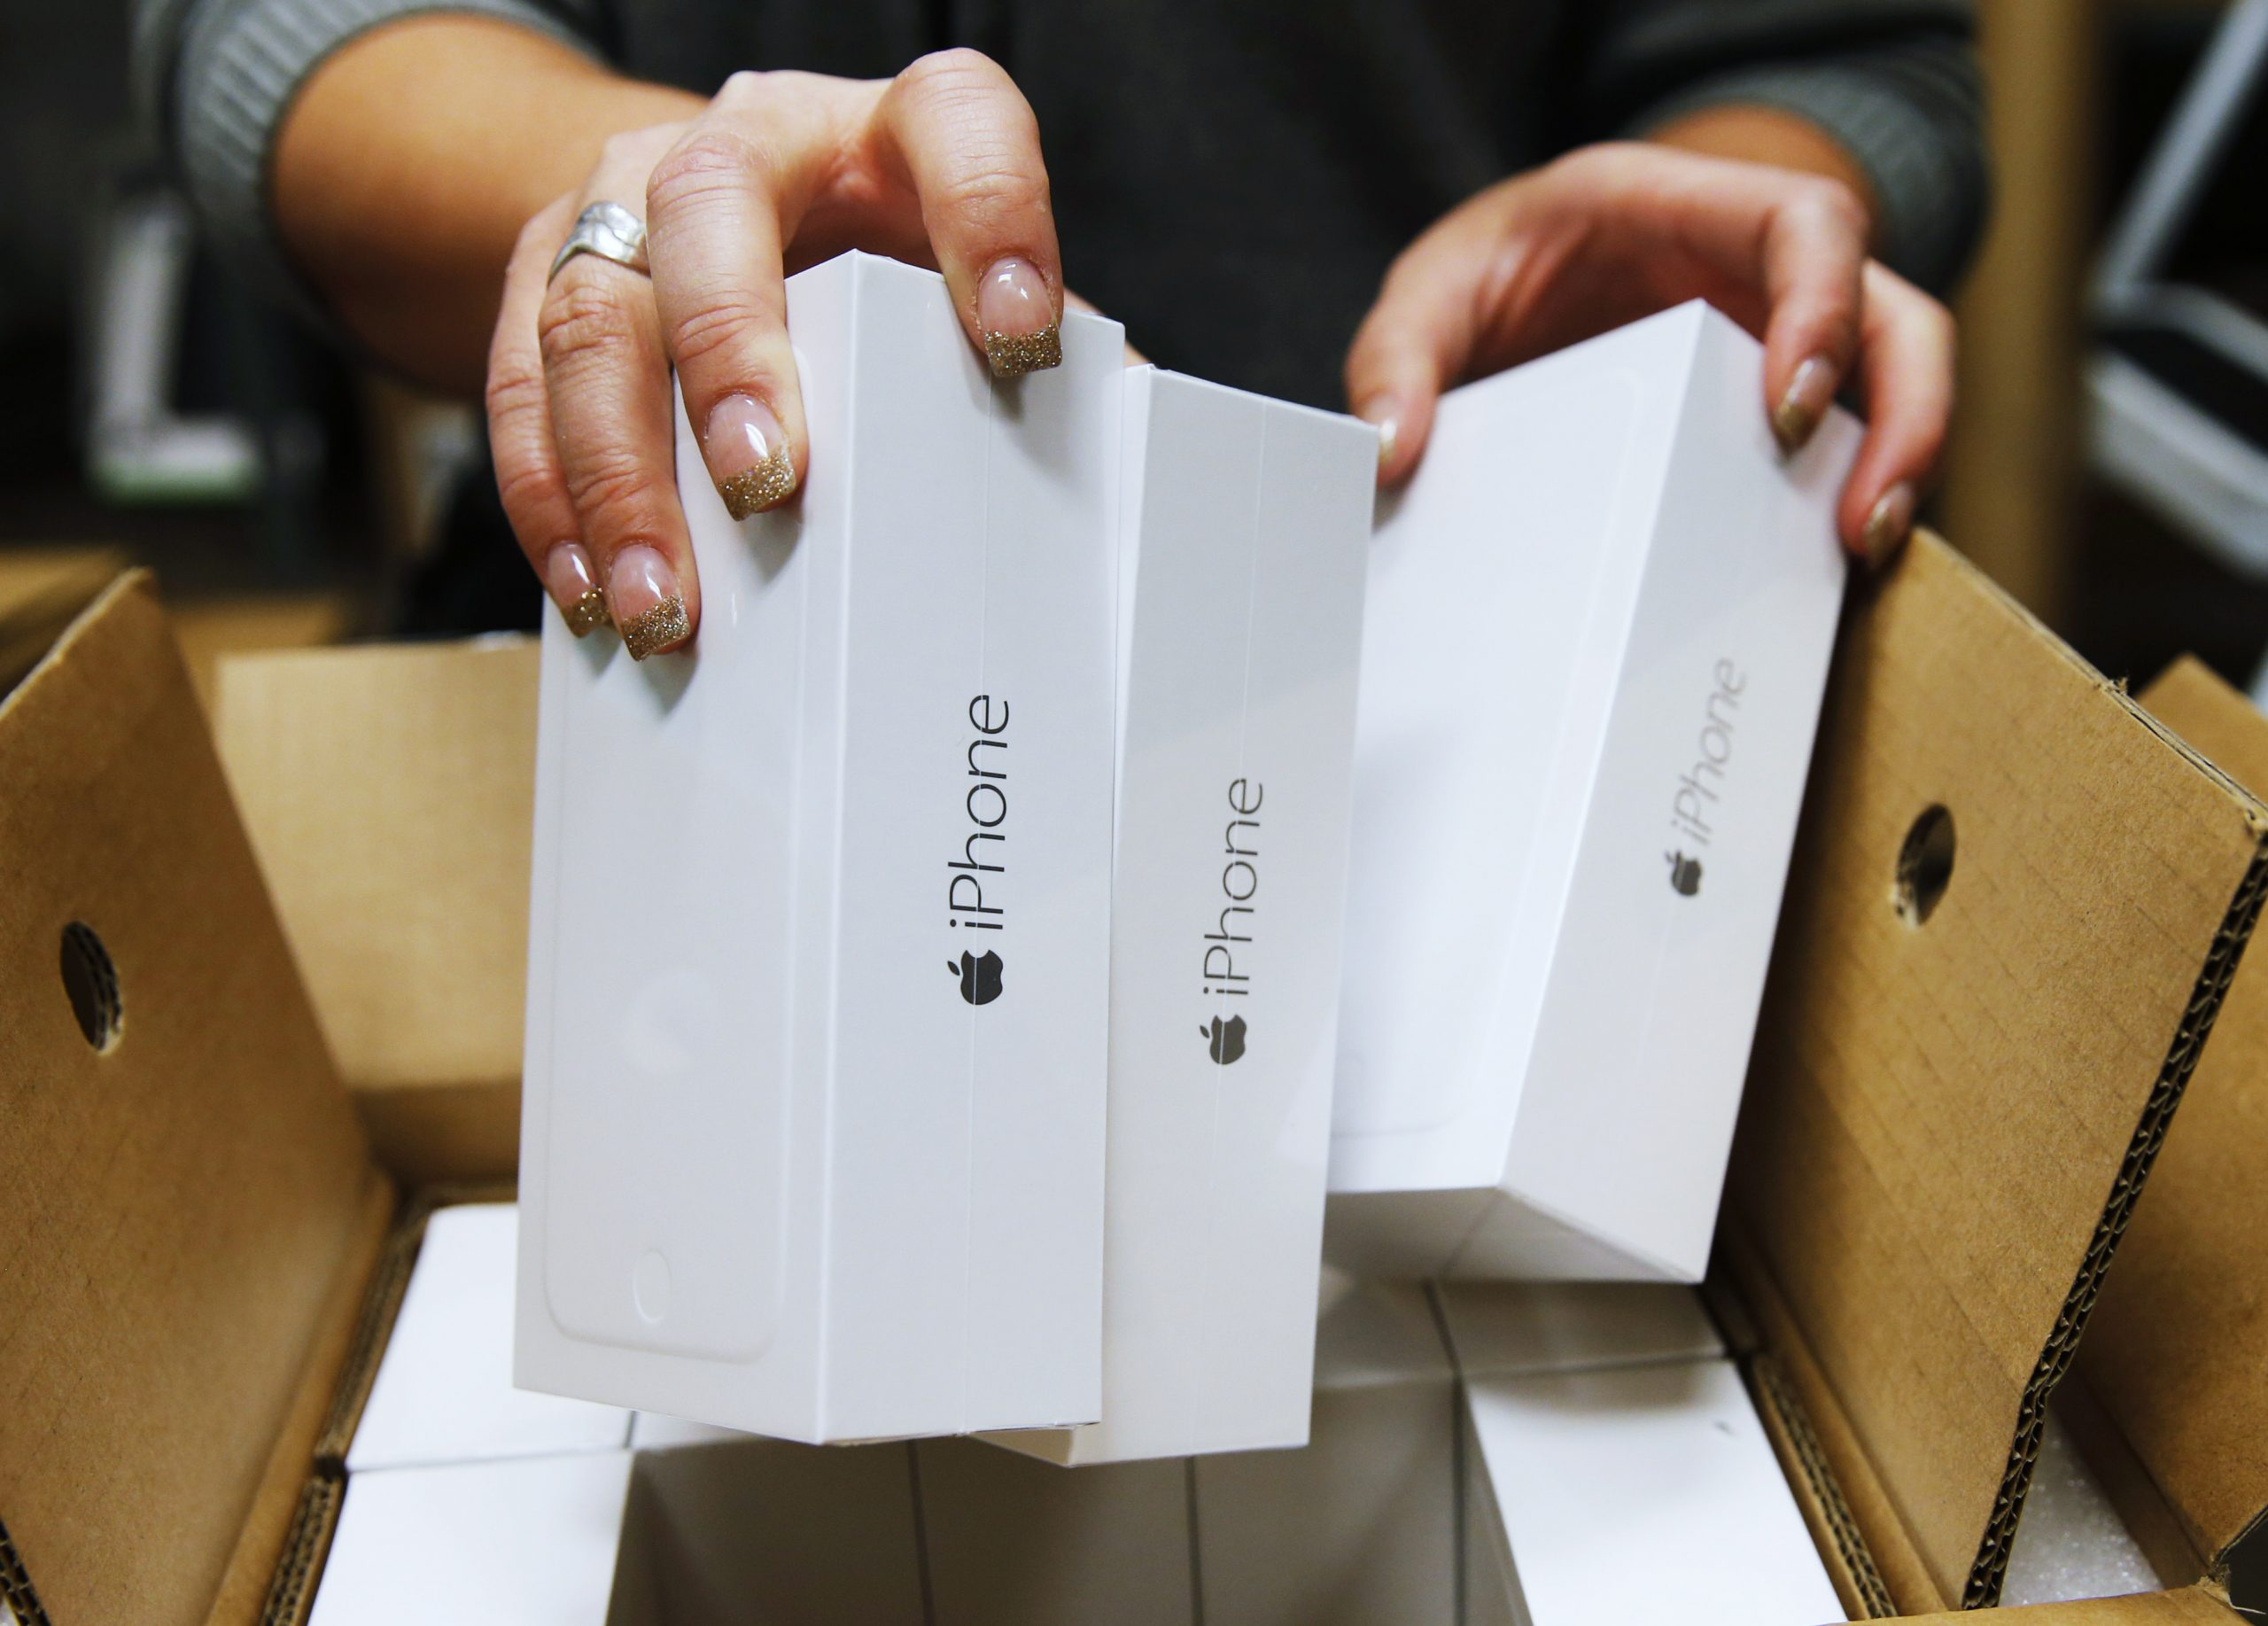 Verizon Store Stocks Shelves With New Apple iPhone 6